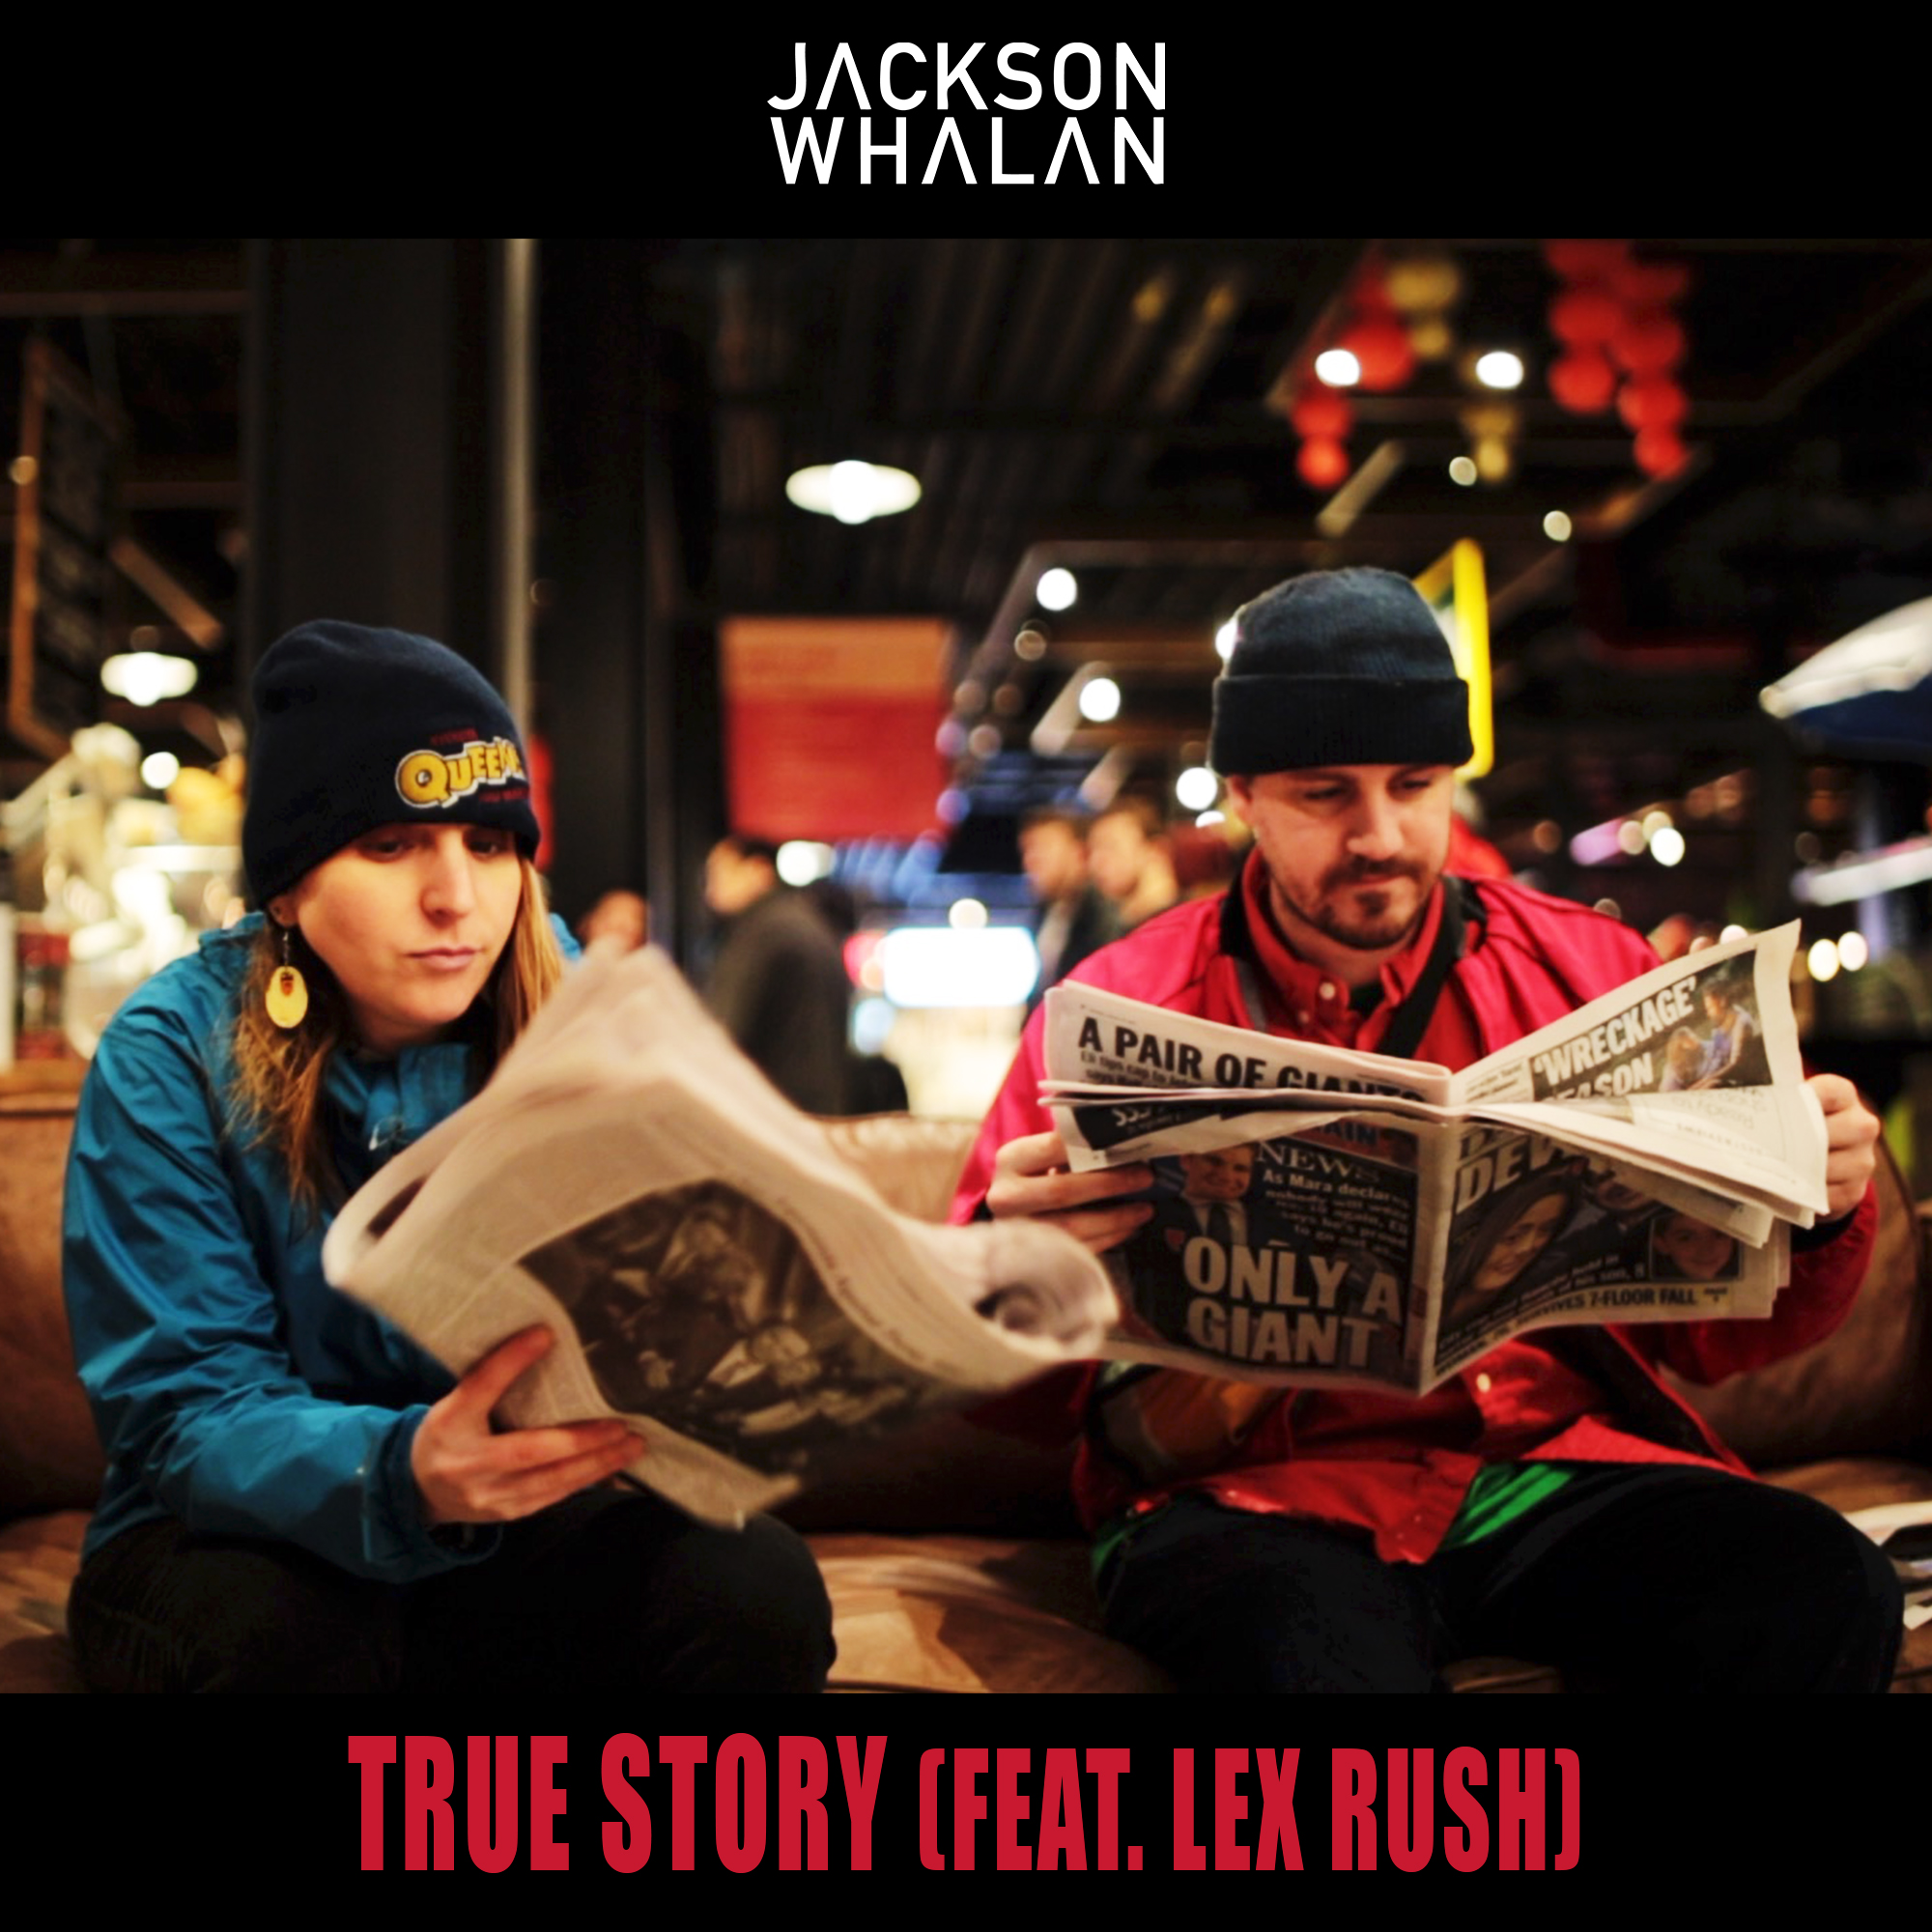 Art for True Story (feat. Lex Rush) by Jackson Whalan